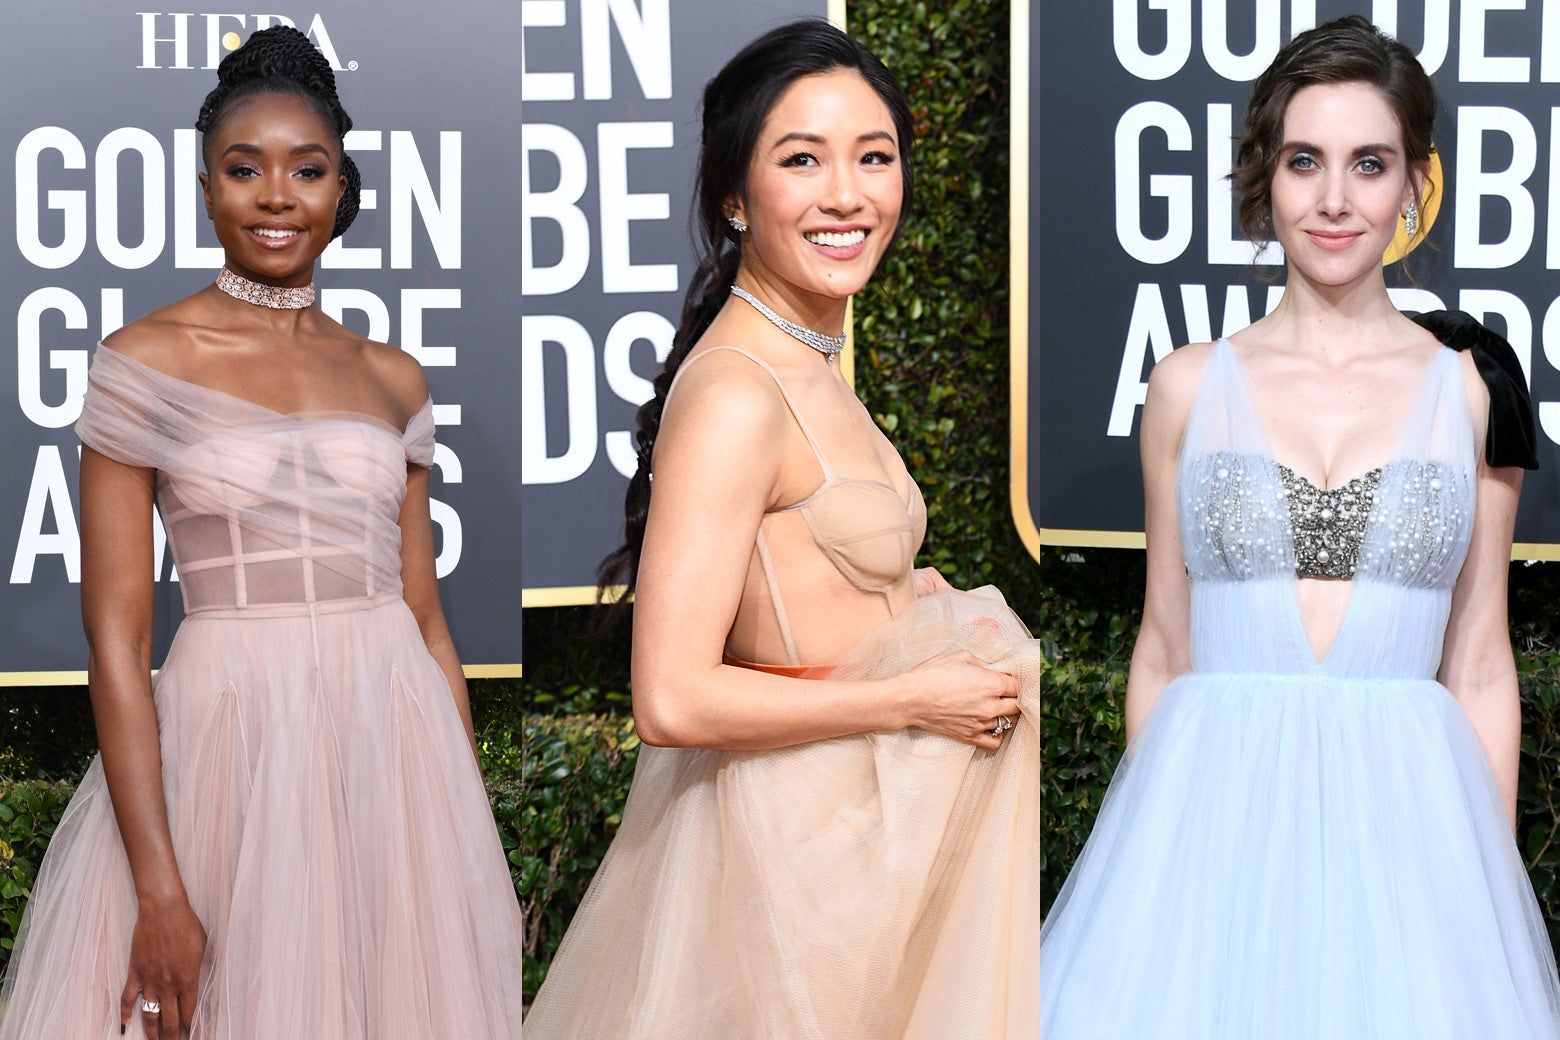 Kiki Layne, Constance Wu, and Alison Brie at the 2019 Golden Globes.